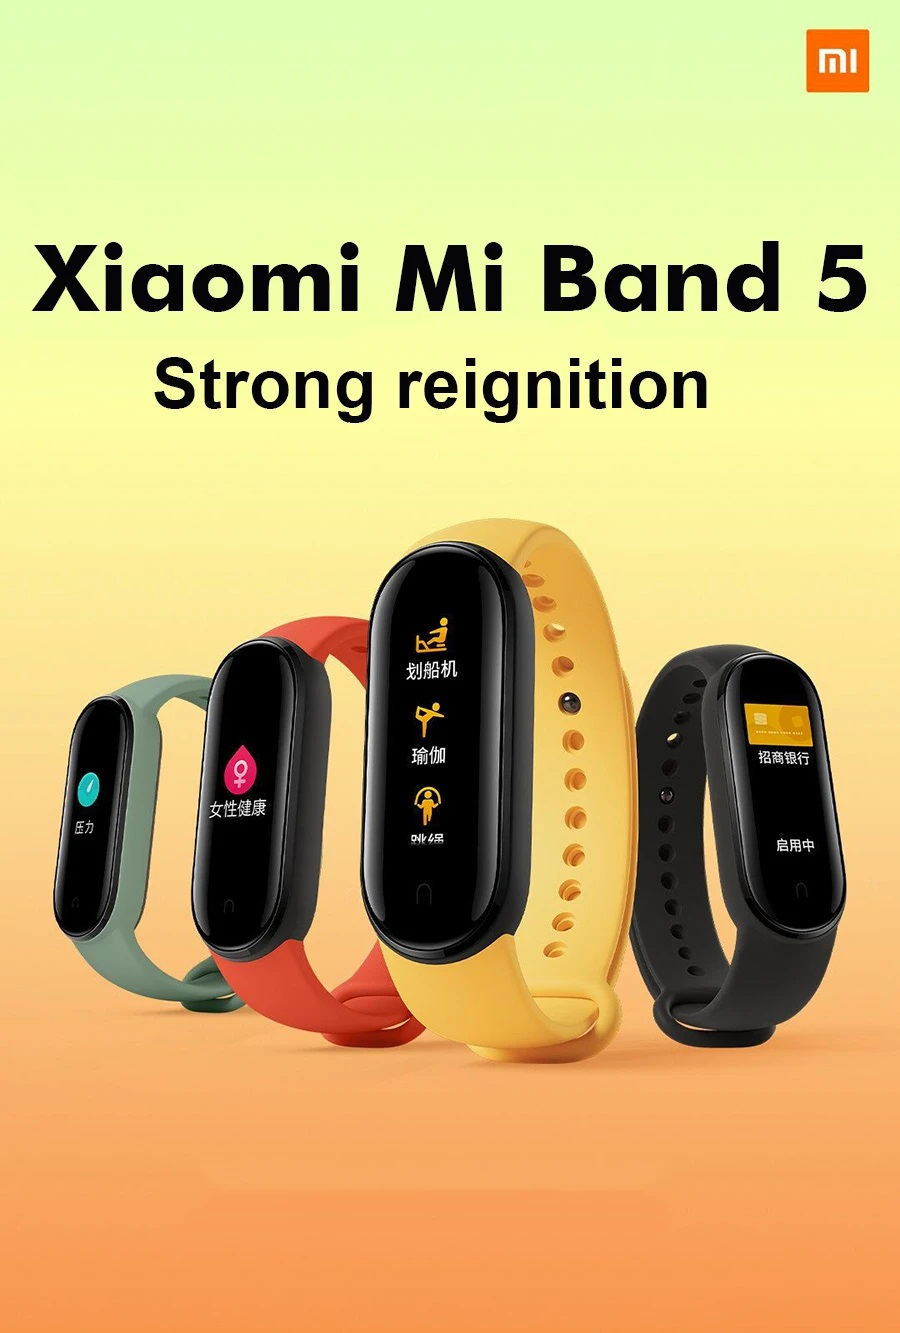 2PCS Xiaomi Mi Band 5 Smart Bracelet Bluetooth 5.0 Sports Fitness Tracker Chinese Version - Black